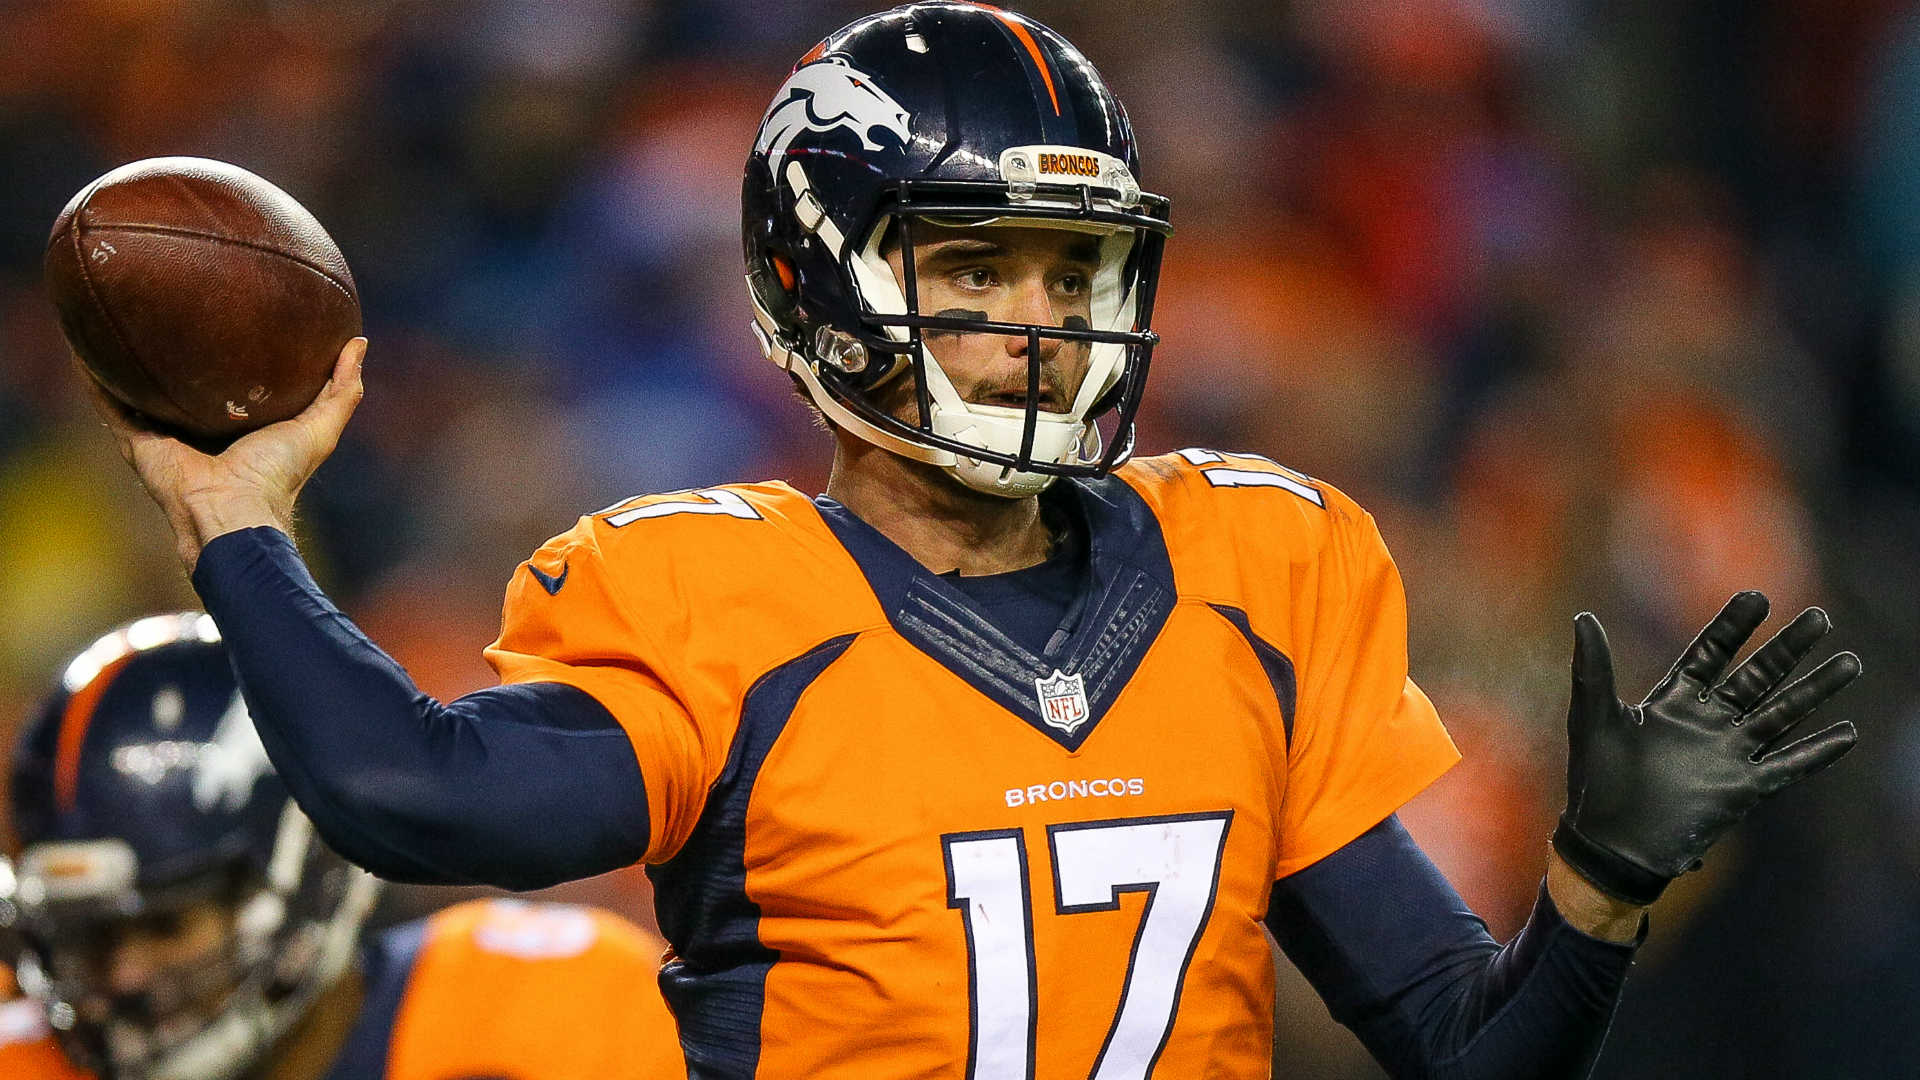 Brock-Osweiler-122815-getty-ftr